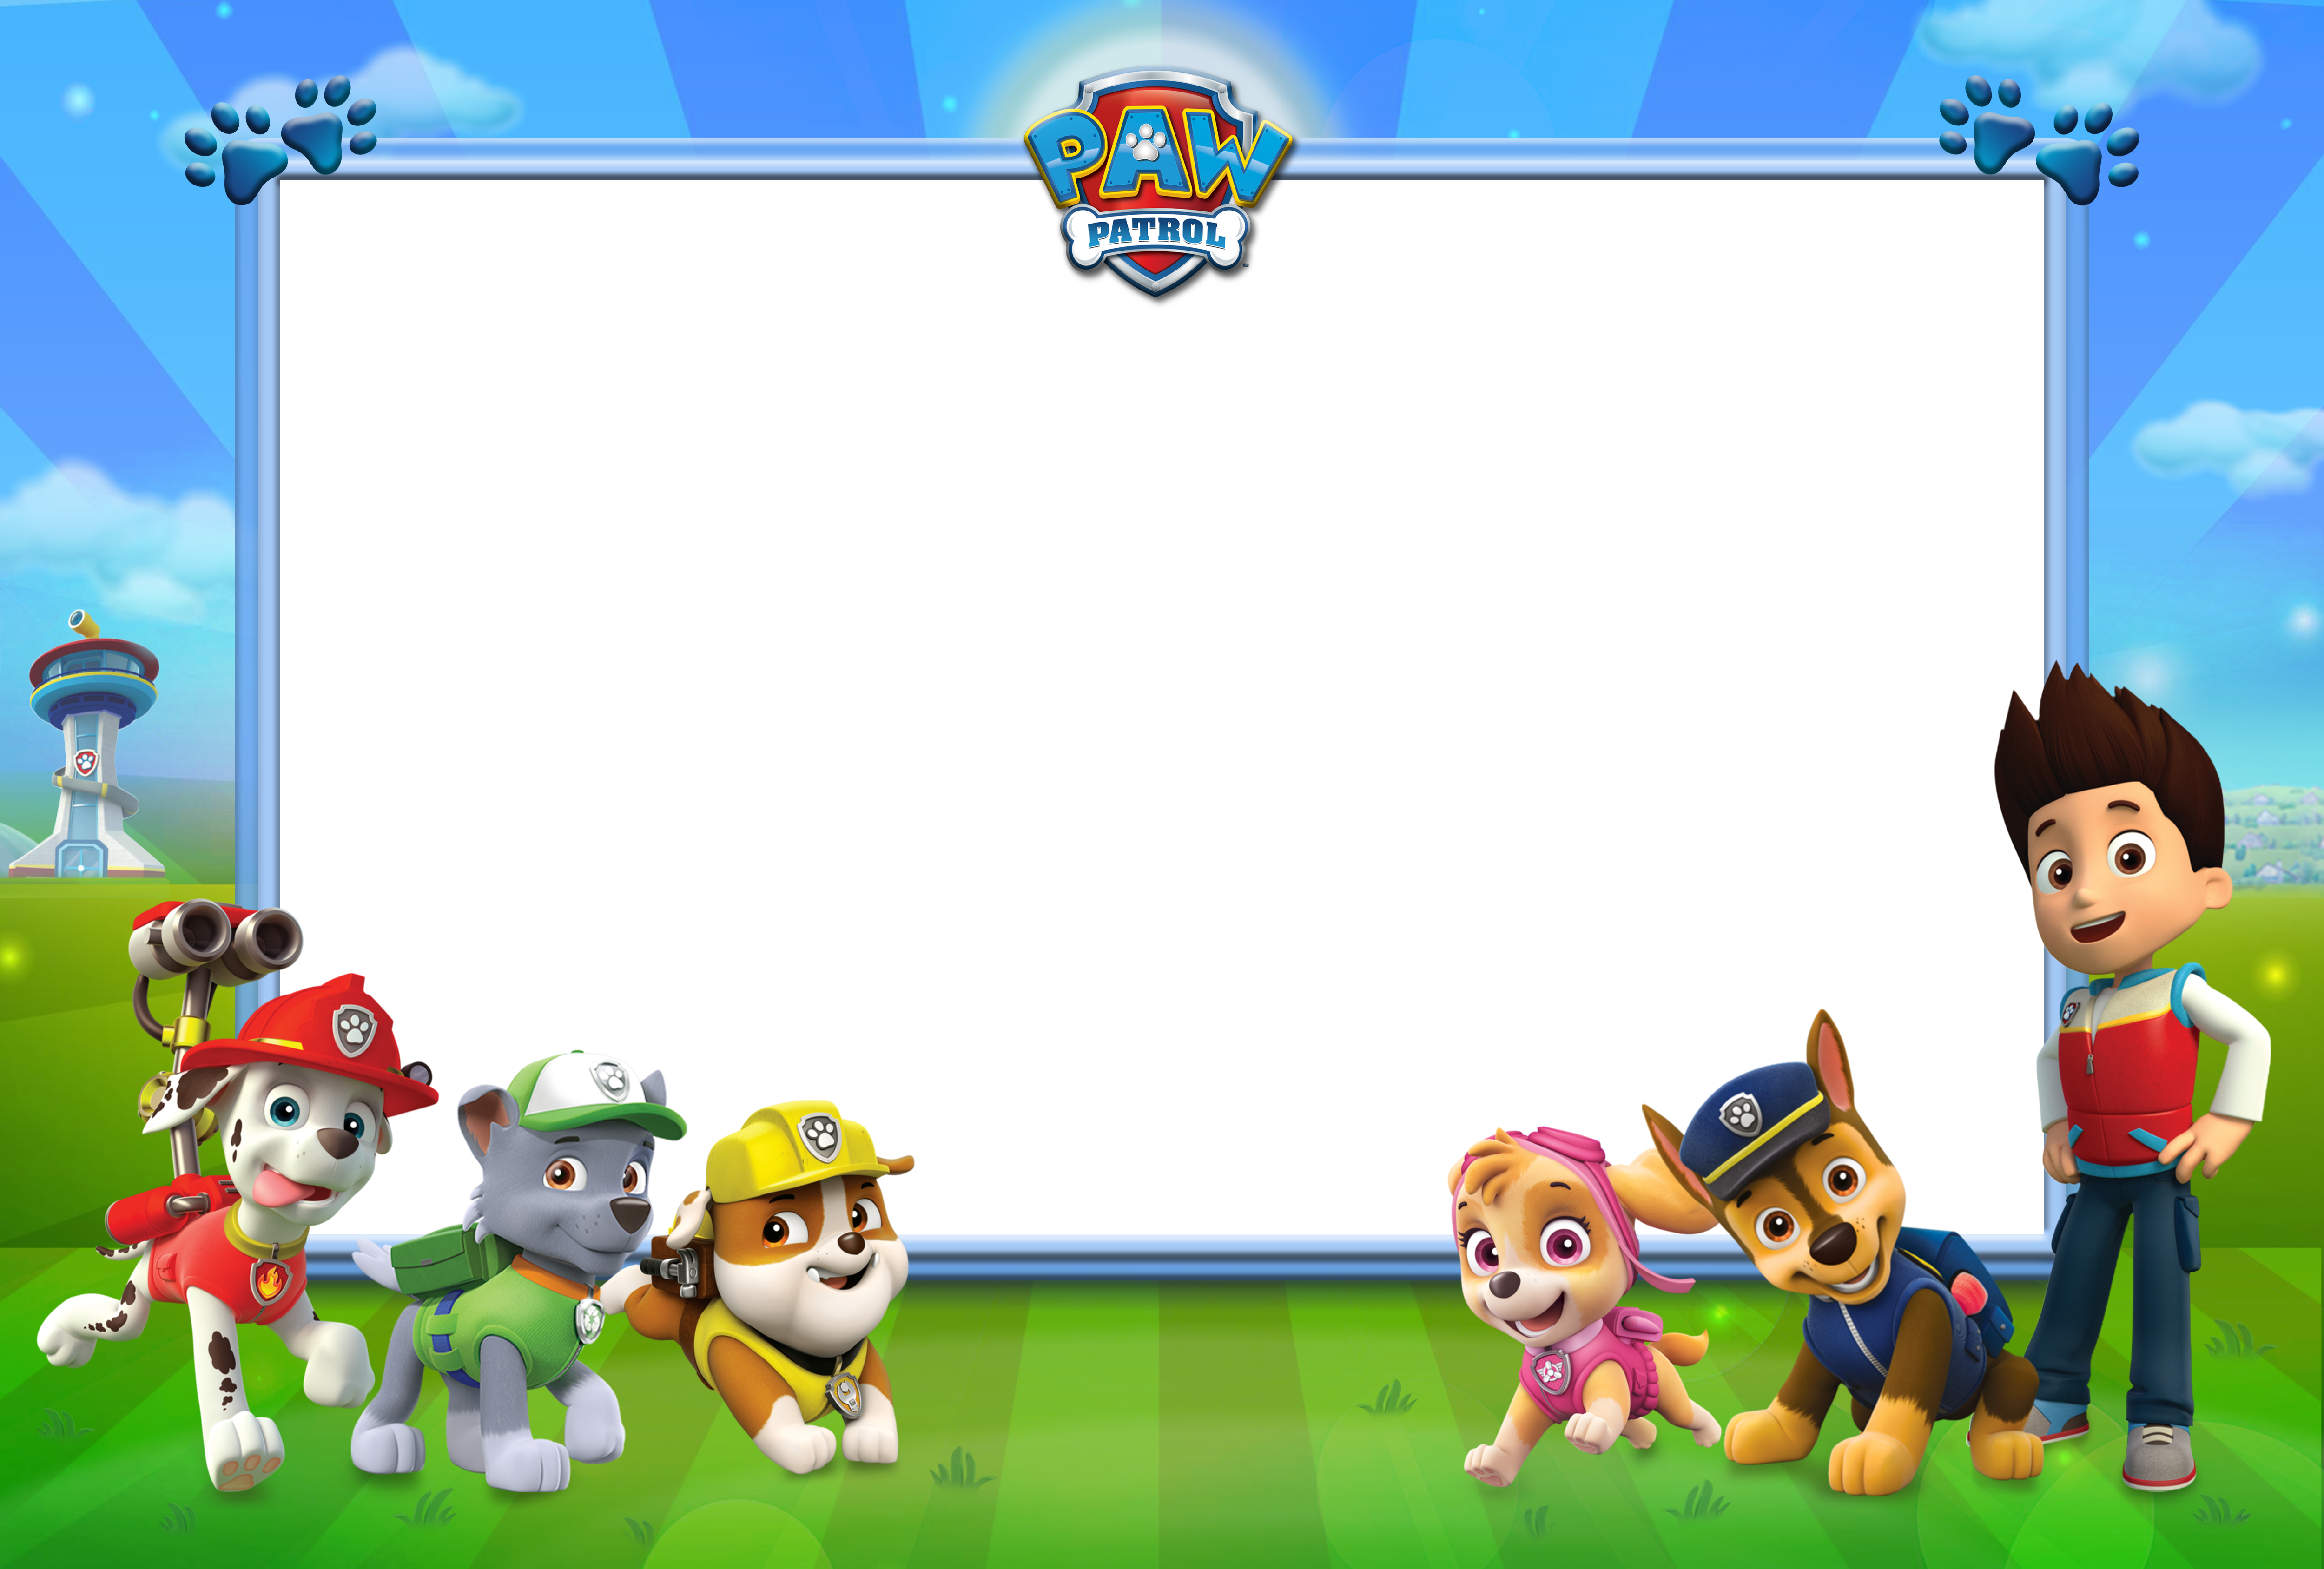 Png backgrounds for kids. Paw patrol transparent photo